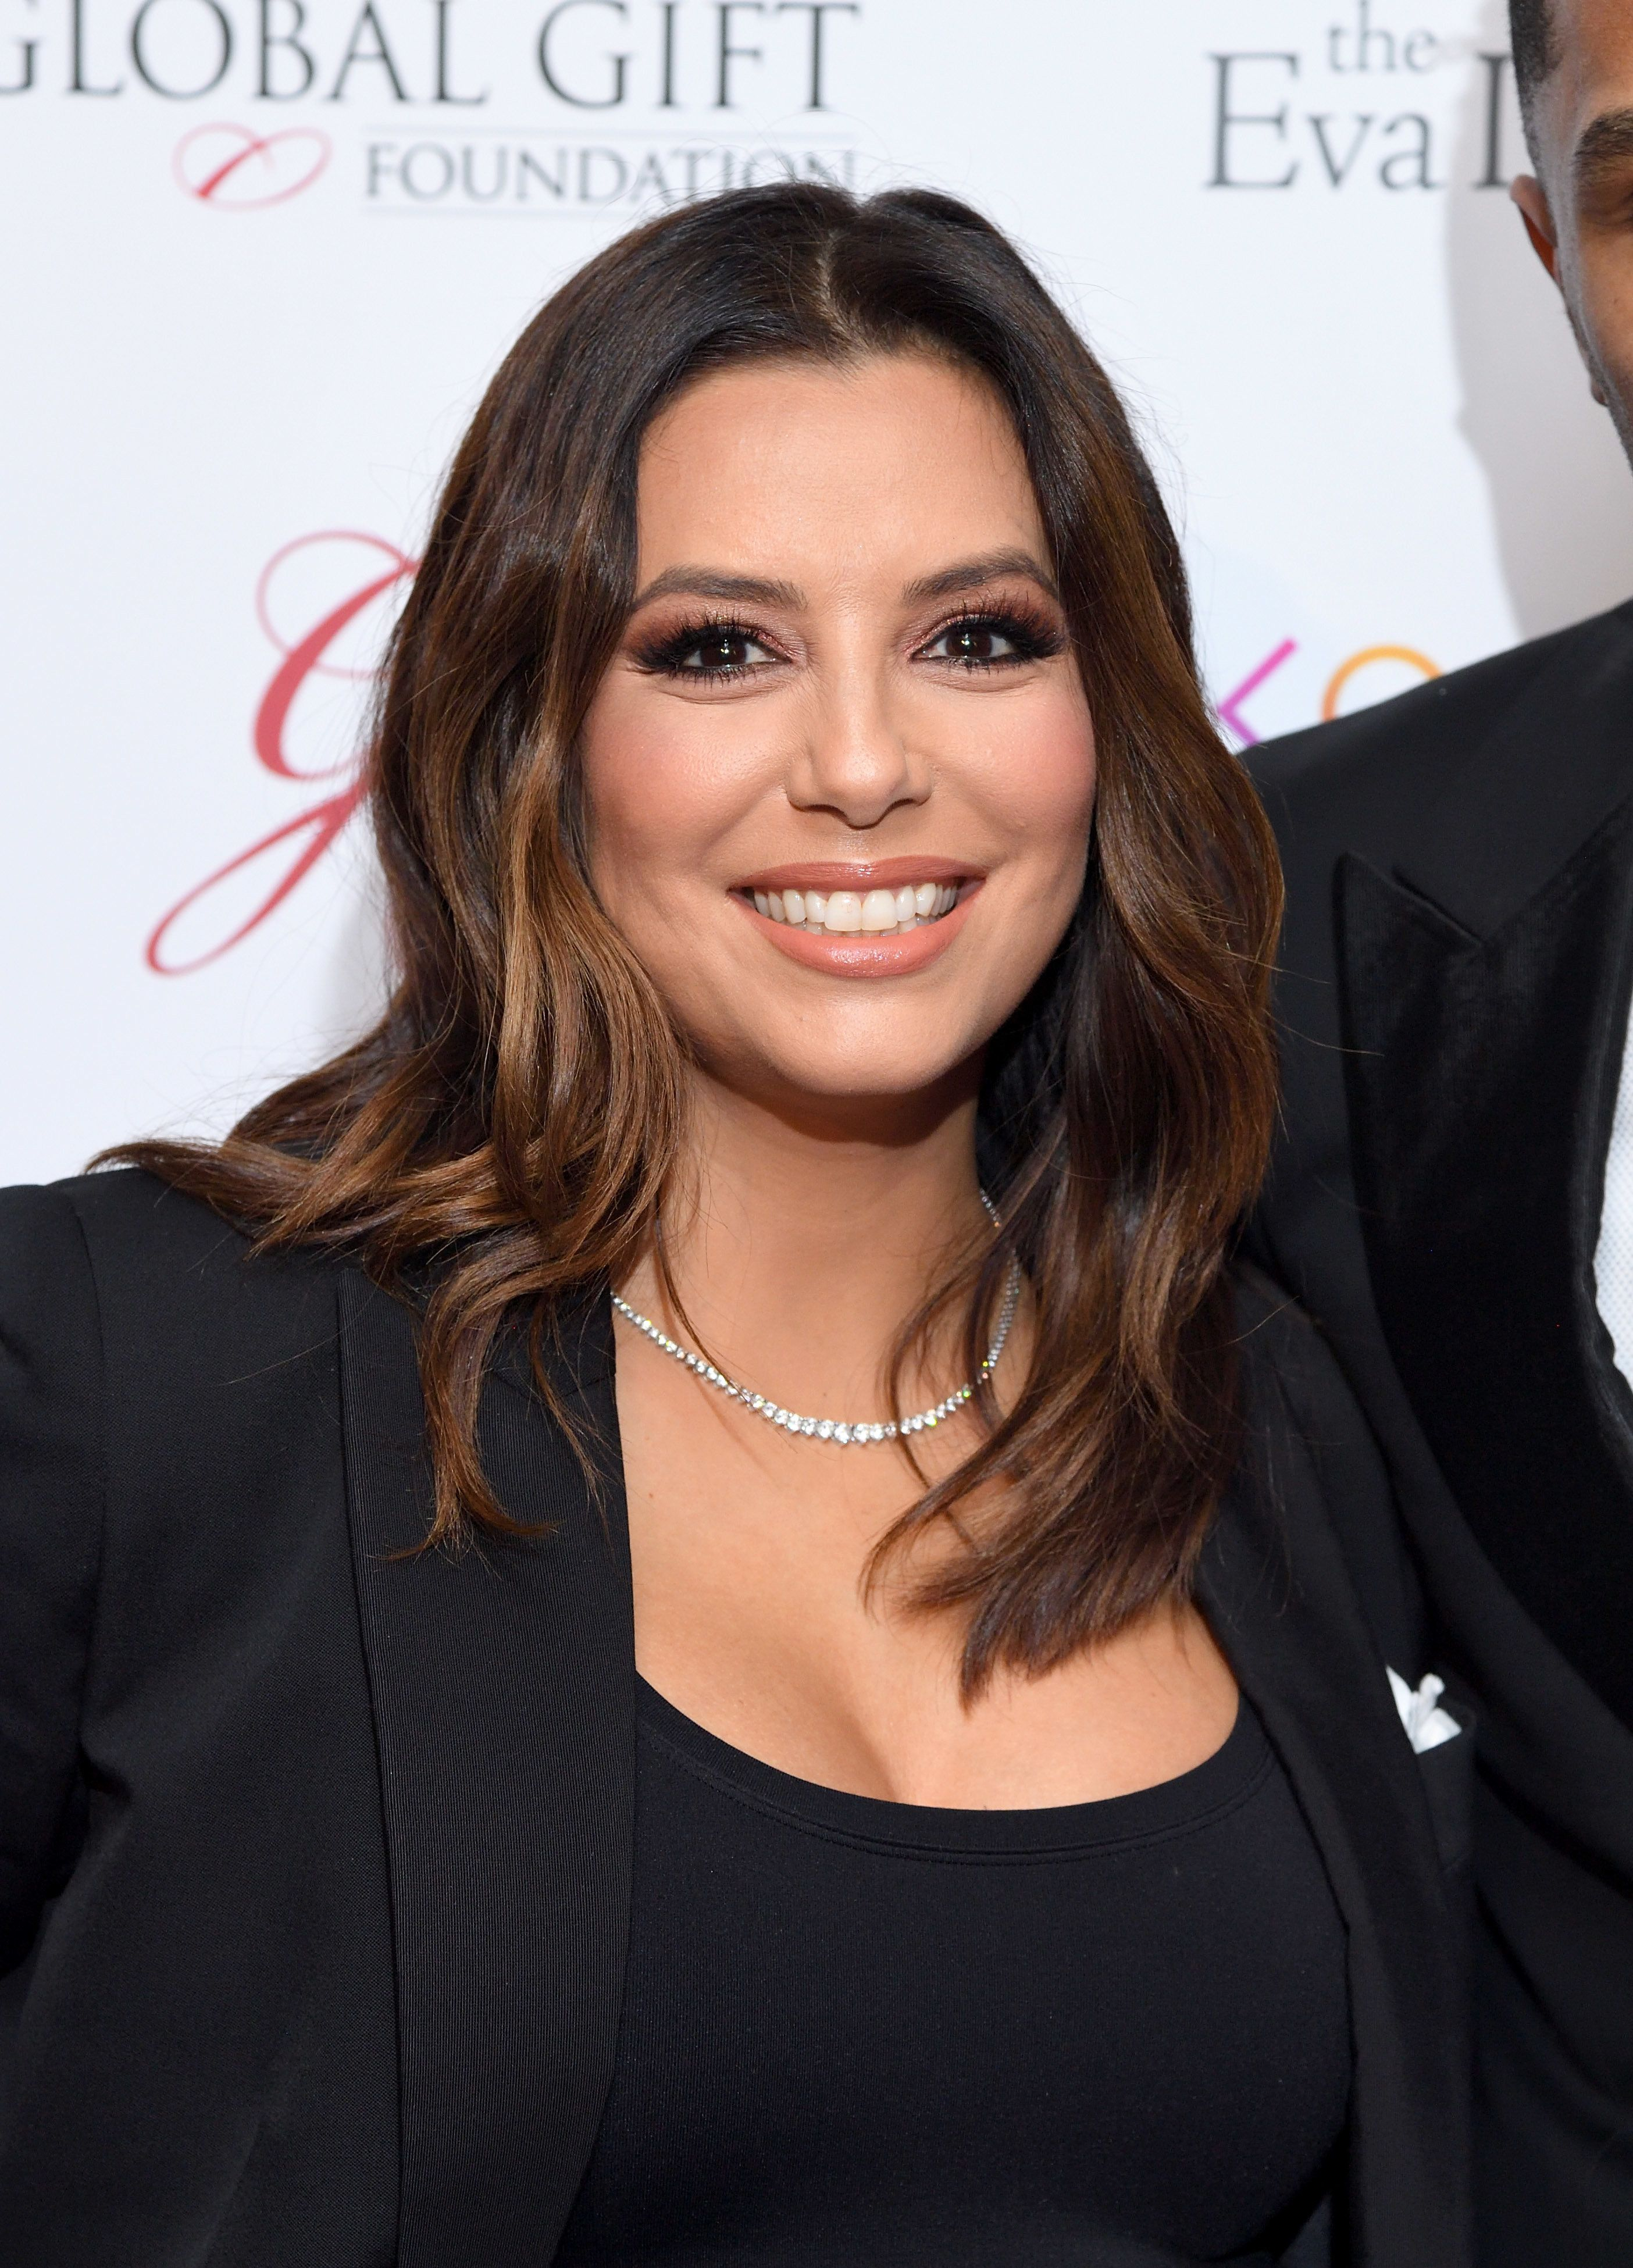 42-year-old Eva Longoria was wearing a sexy black suit for a photo shoot 02.08.2017 95